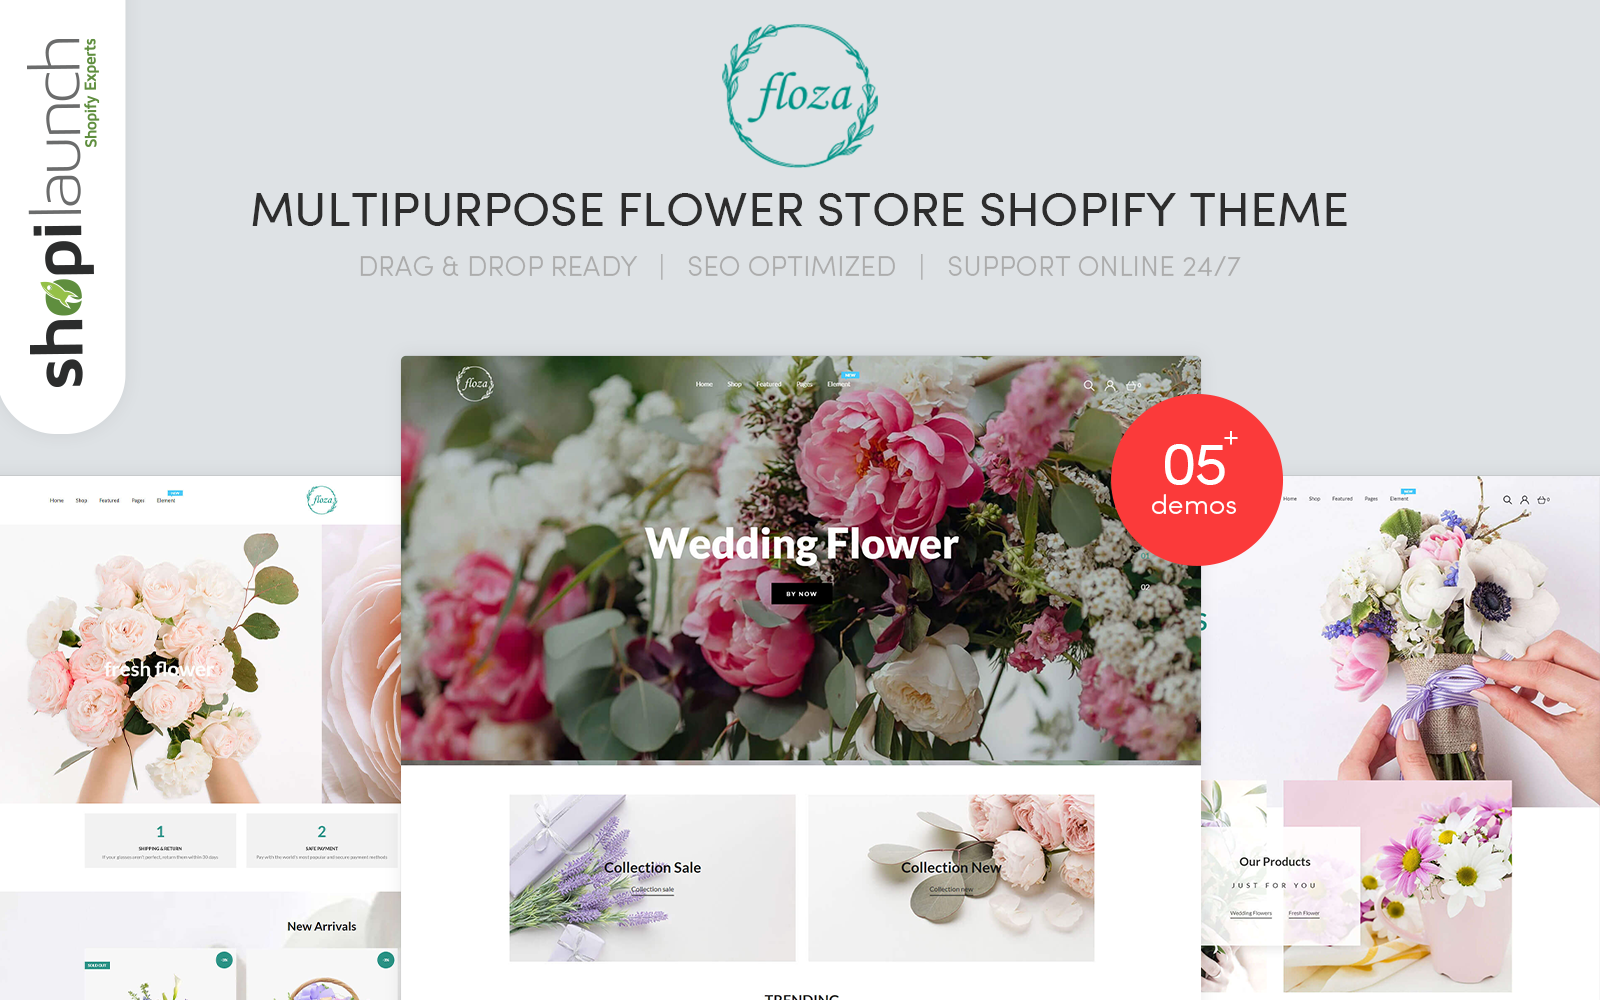 Floza - MultiPurpose Flower Store Shopify Theme